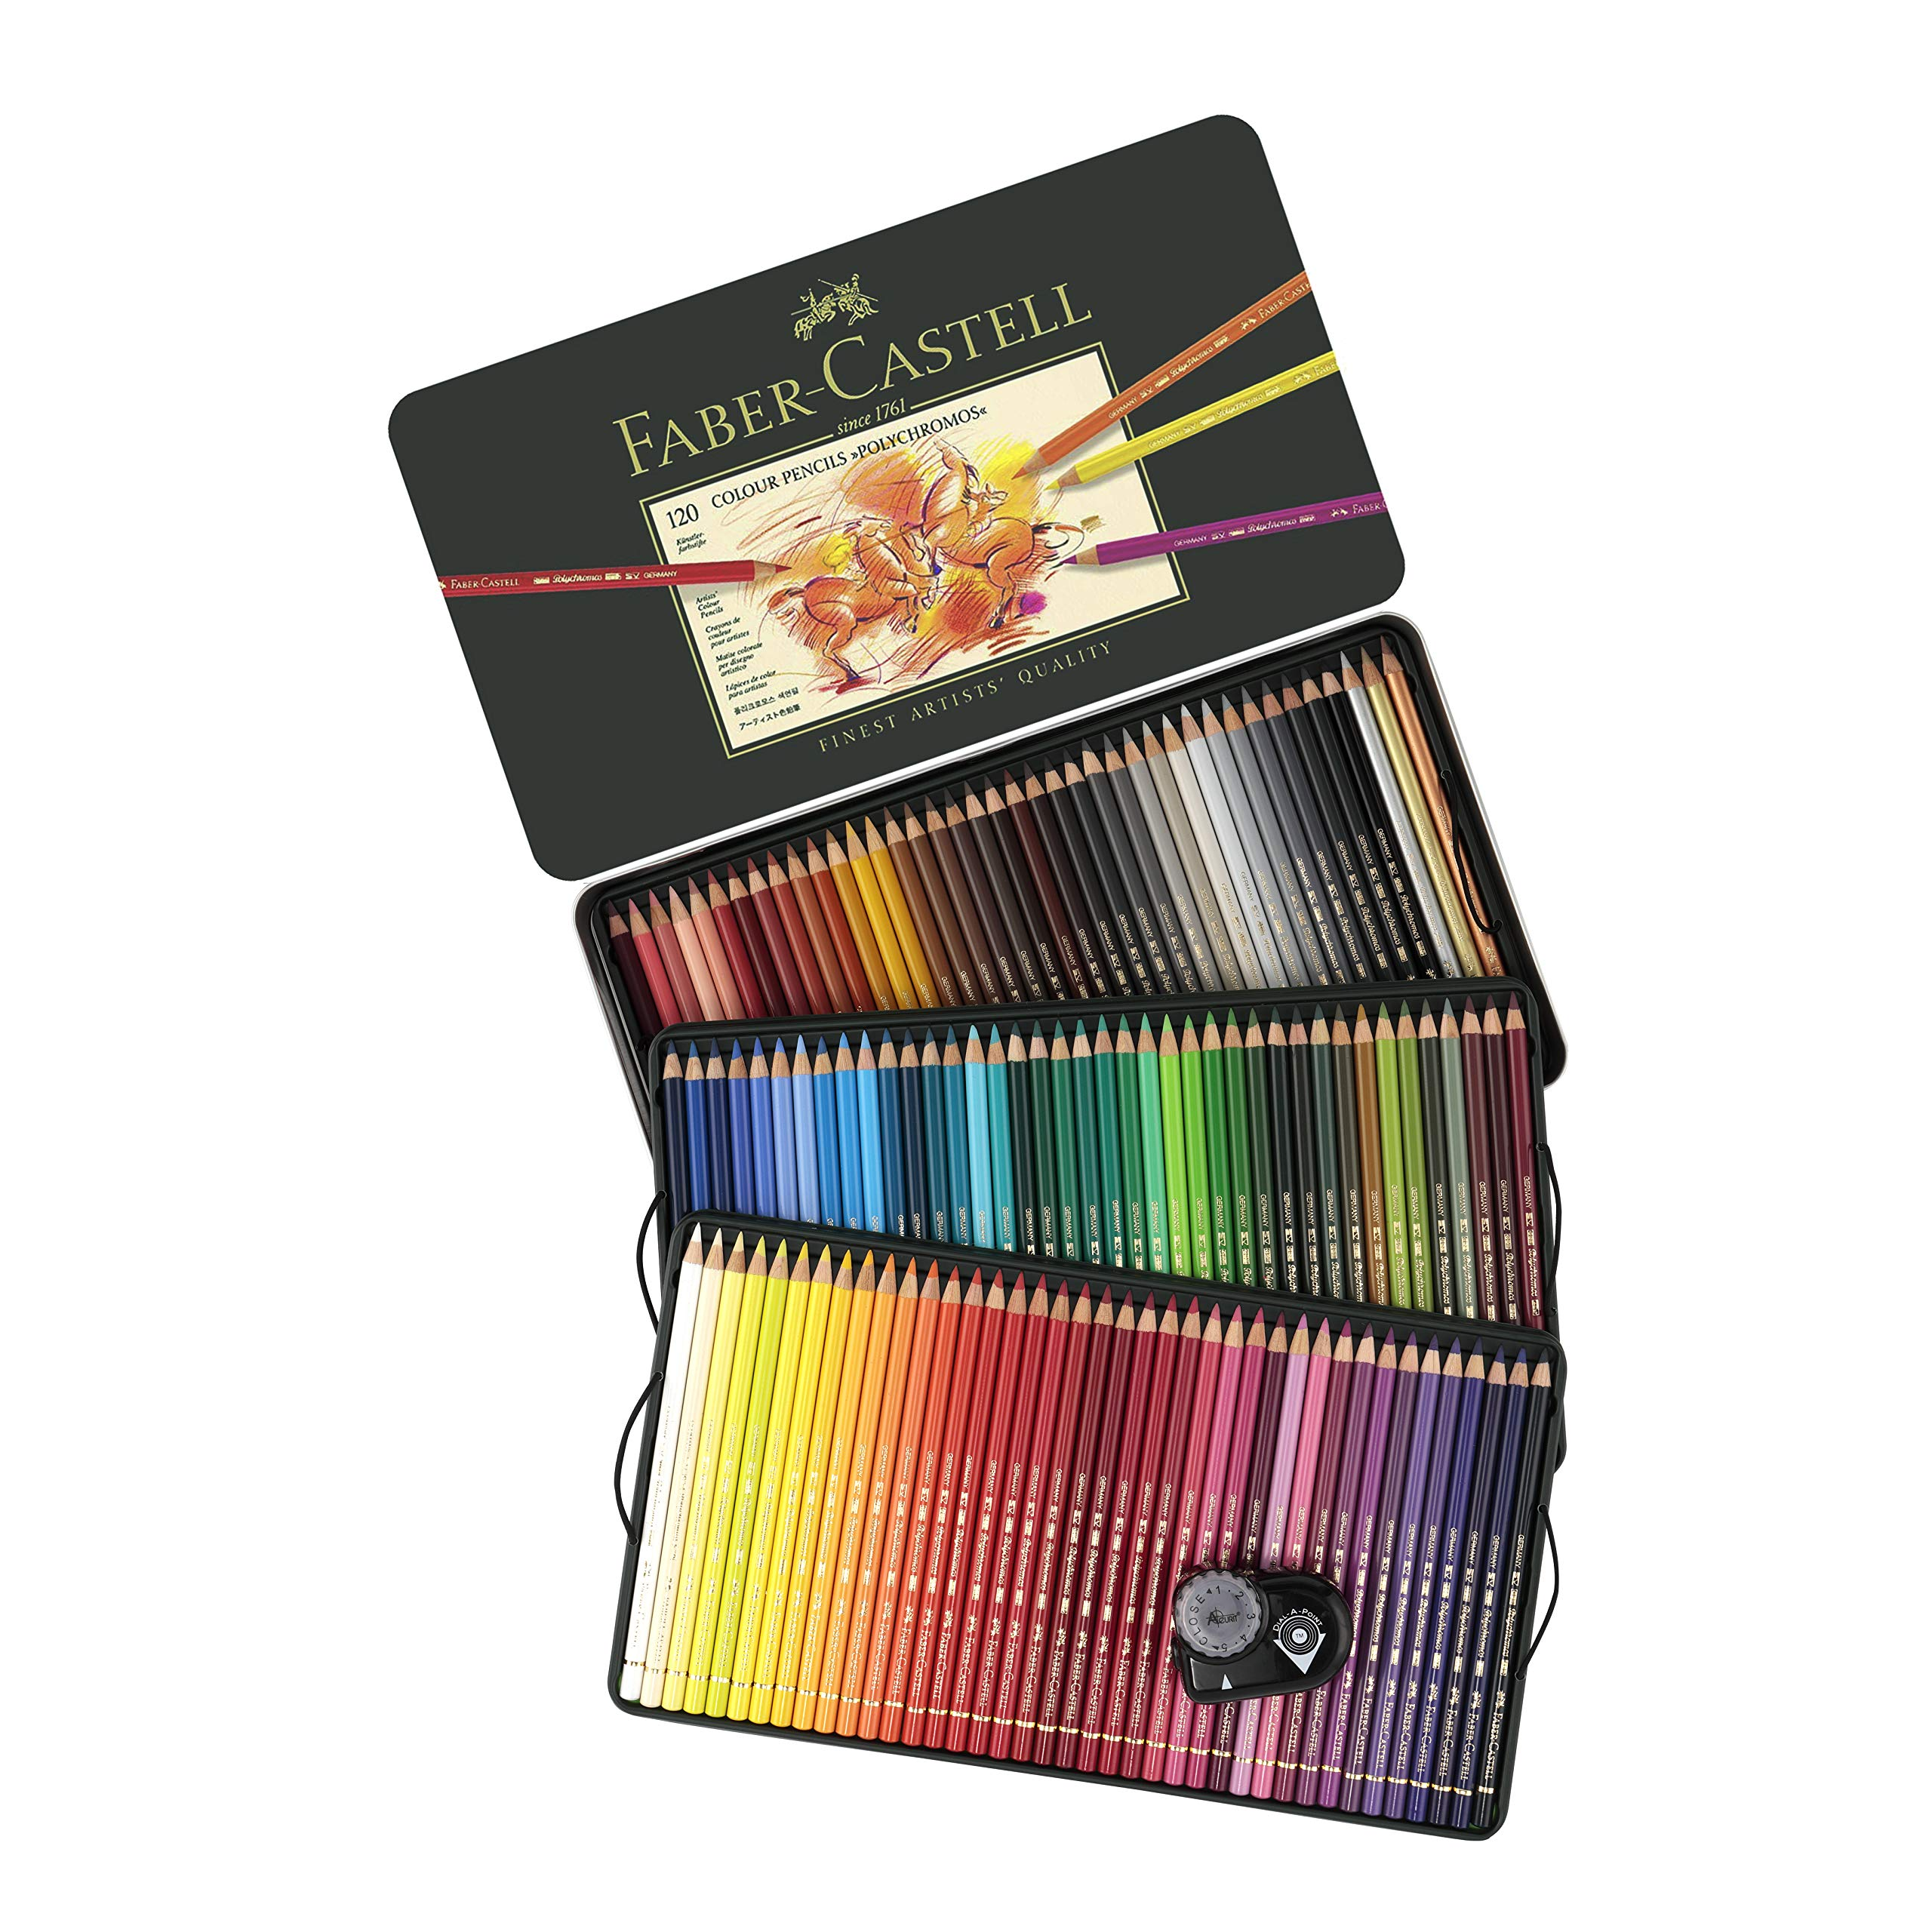 FaberCastell Polychromos Artist Colored Pencils Set - Tin of 120 Colors - Premium Quality Polychromos Colored Pencils 120 Set Art Supplies Set for Arts and Crafts Includes Pencil Sharpener by Jerrys Artarama (Image #1)